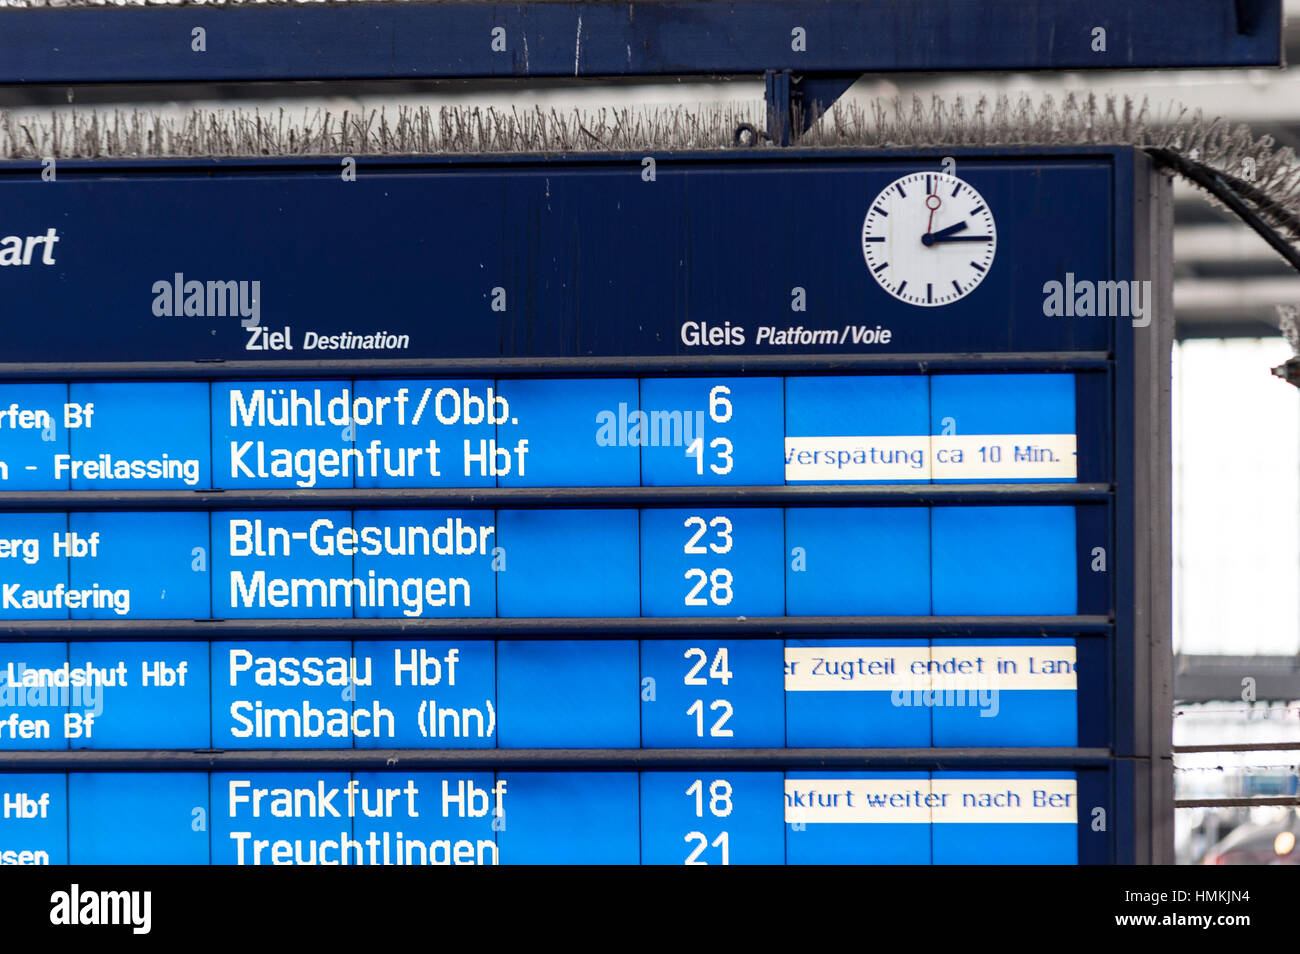 German Railways Display - Verspätung/Delay - Stock Image